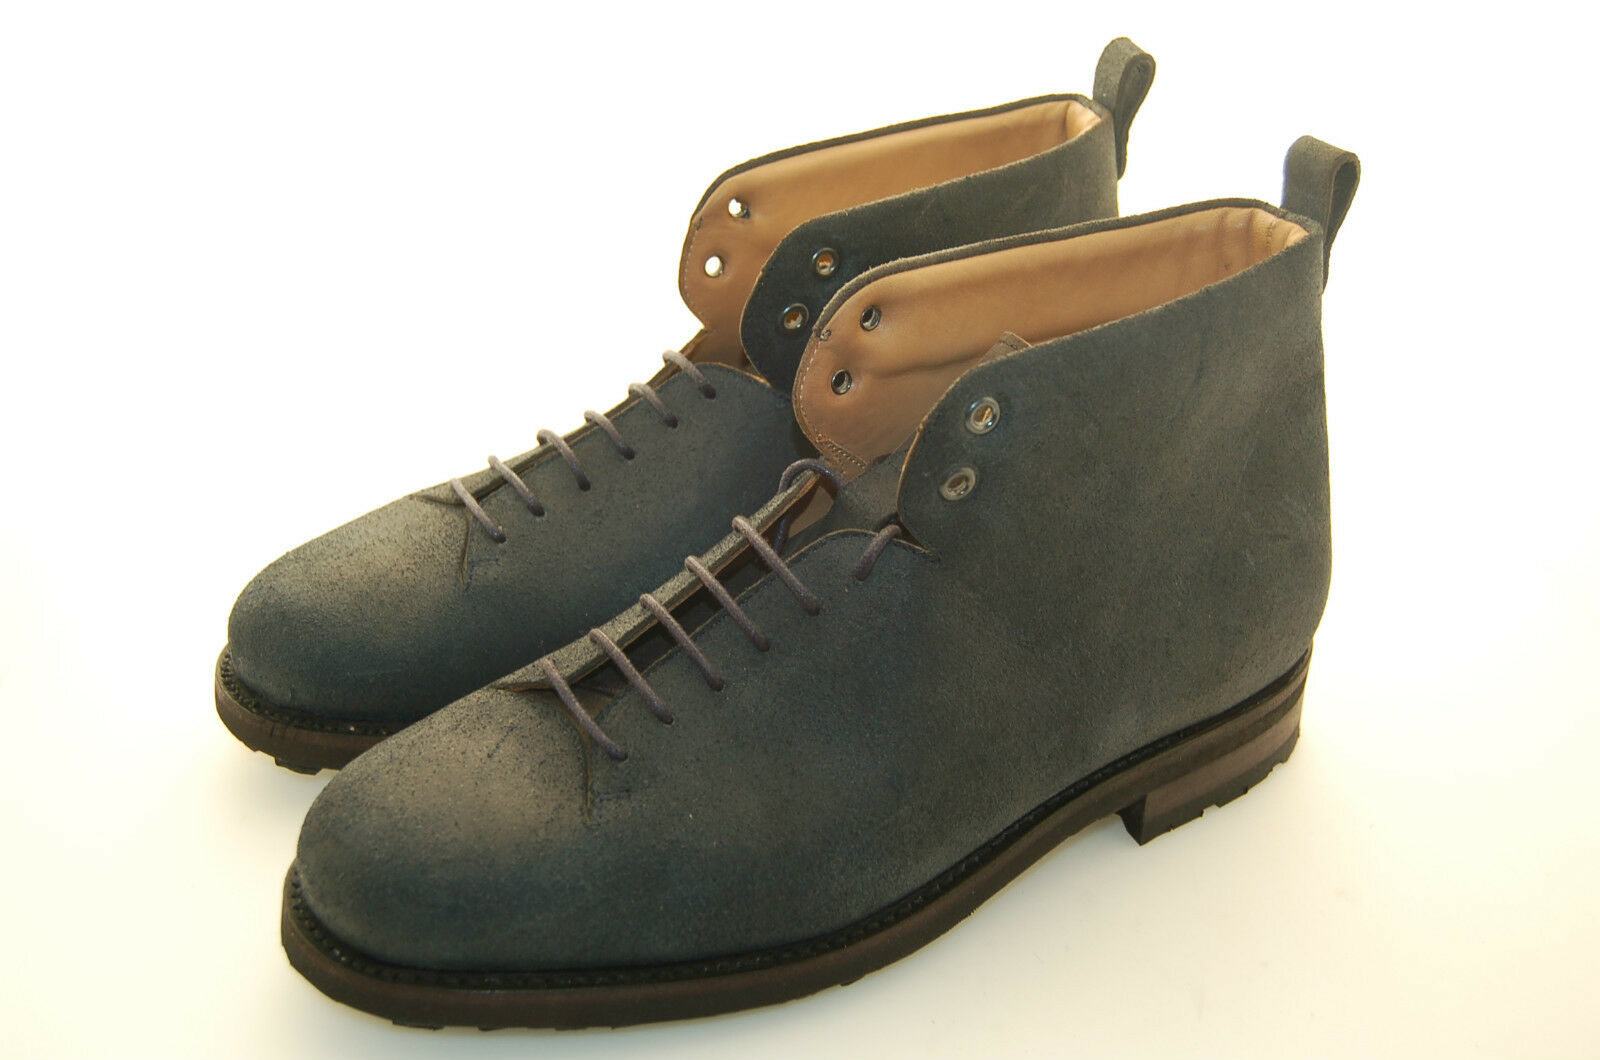 MAN - 43½ - 10½USA - ANKLE BOOT BOOT BOOT - STIVALE - REVERSO CALF - BLUE - RUBBER SOLE 704a7d